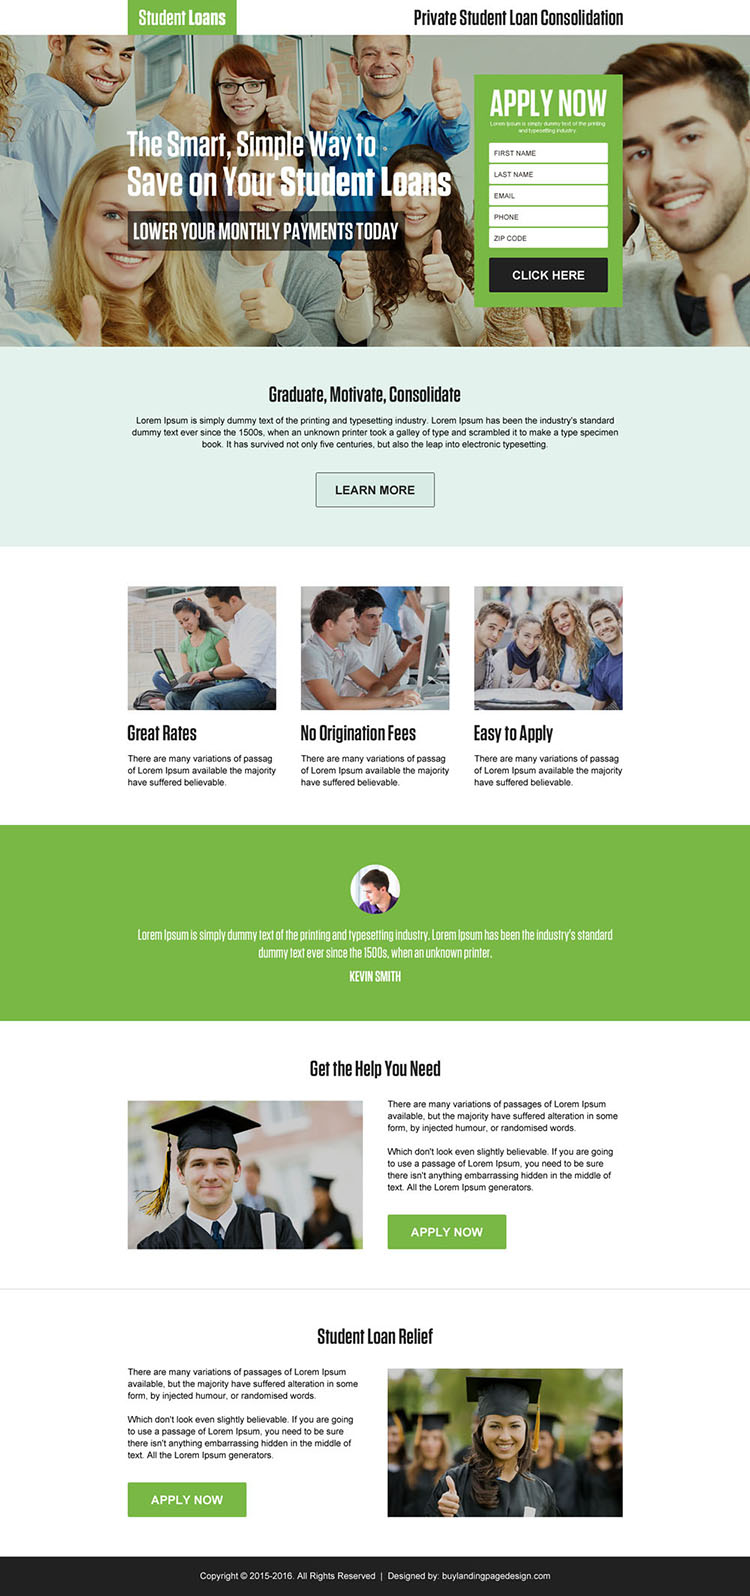 student loan consolidation lead generating landing page design